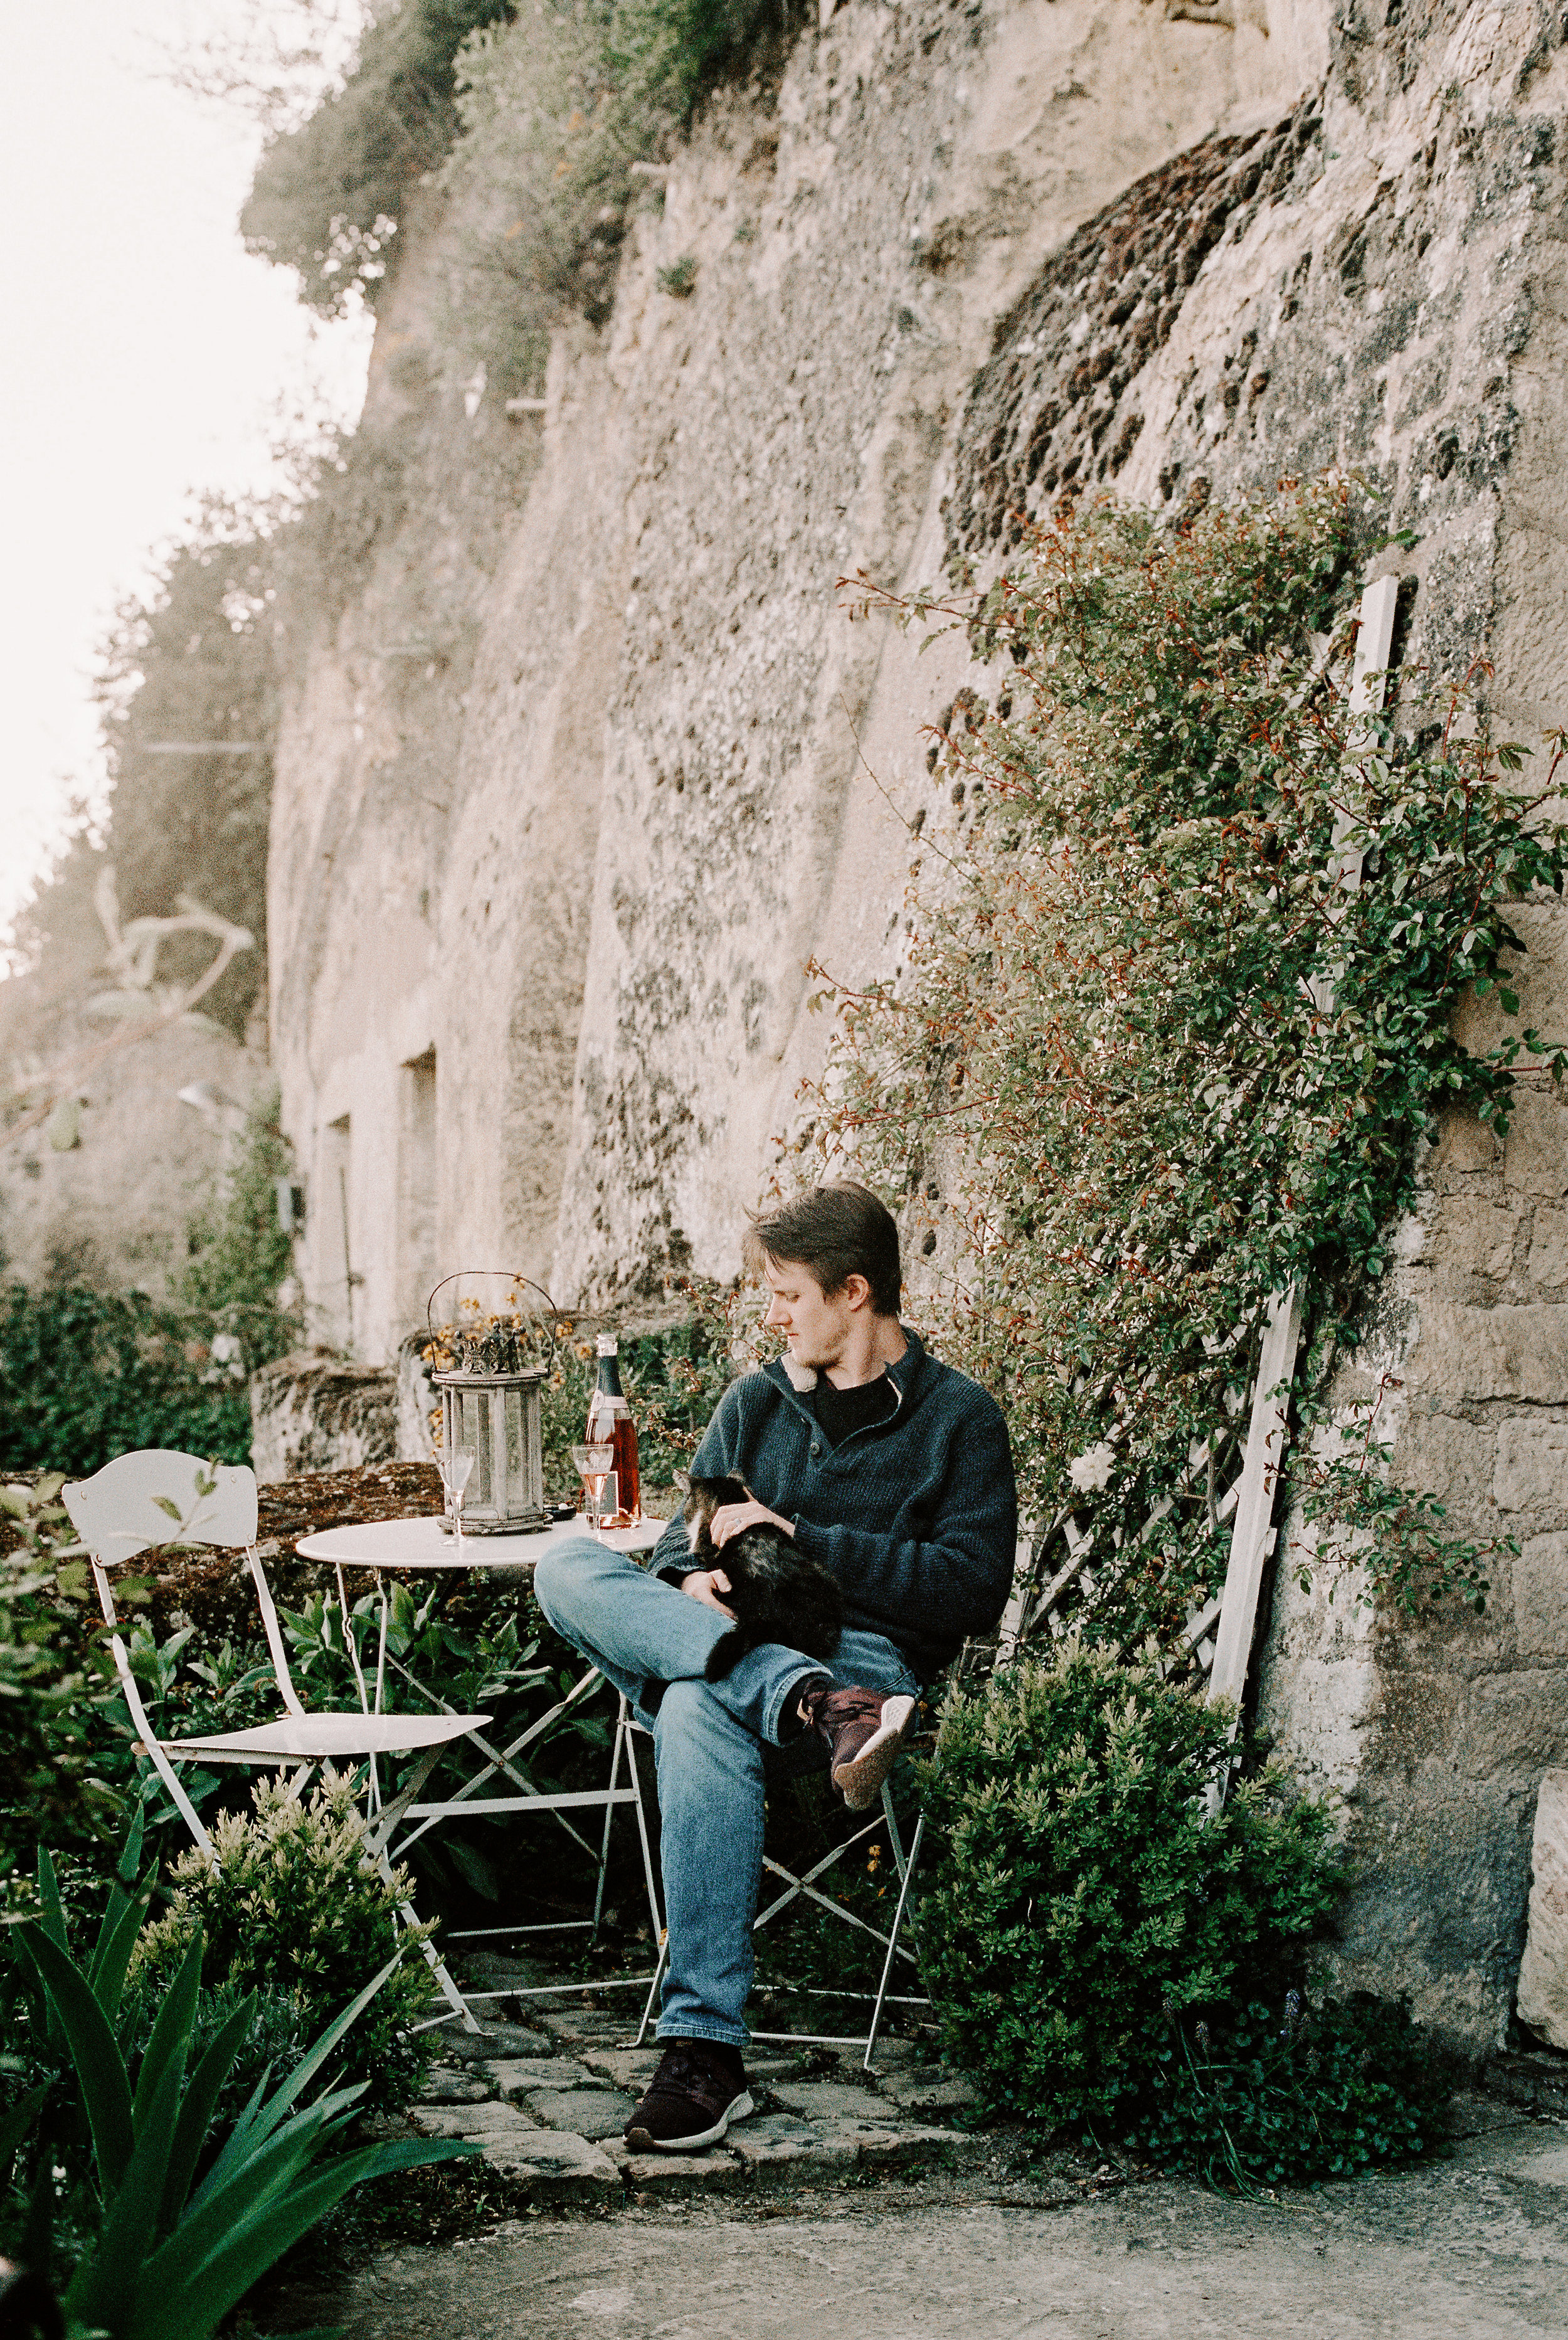 Brock sitting on our terrace the first night in Amboise. We stayed in a troglodyte - a cave built into the limestone hills which pepper the area. The limestone was hauled to the city centuries ago to build the chateau and people have lived in these caves for longer than we can imagine.